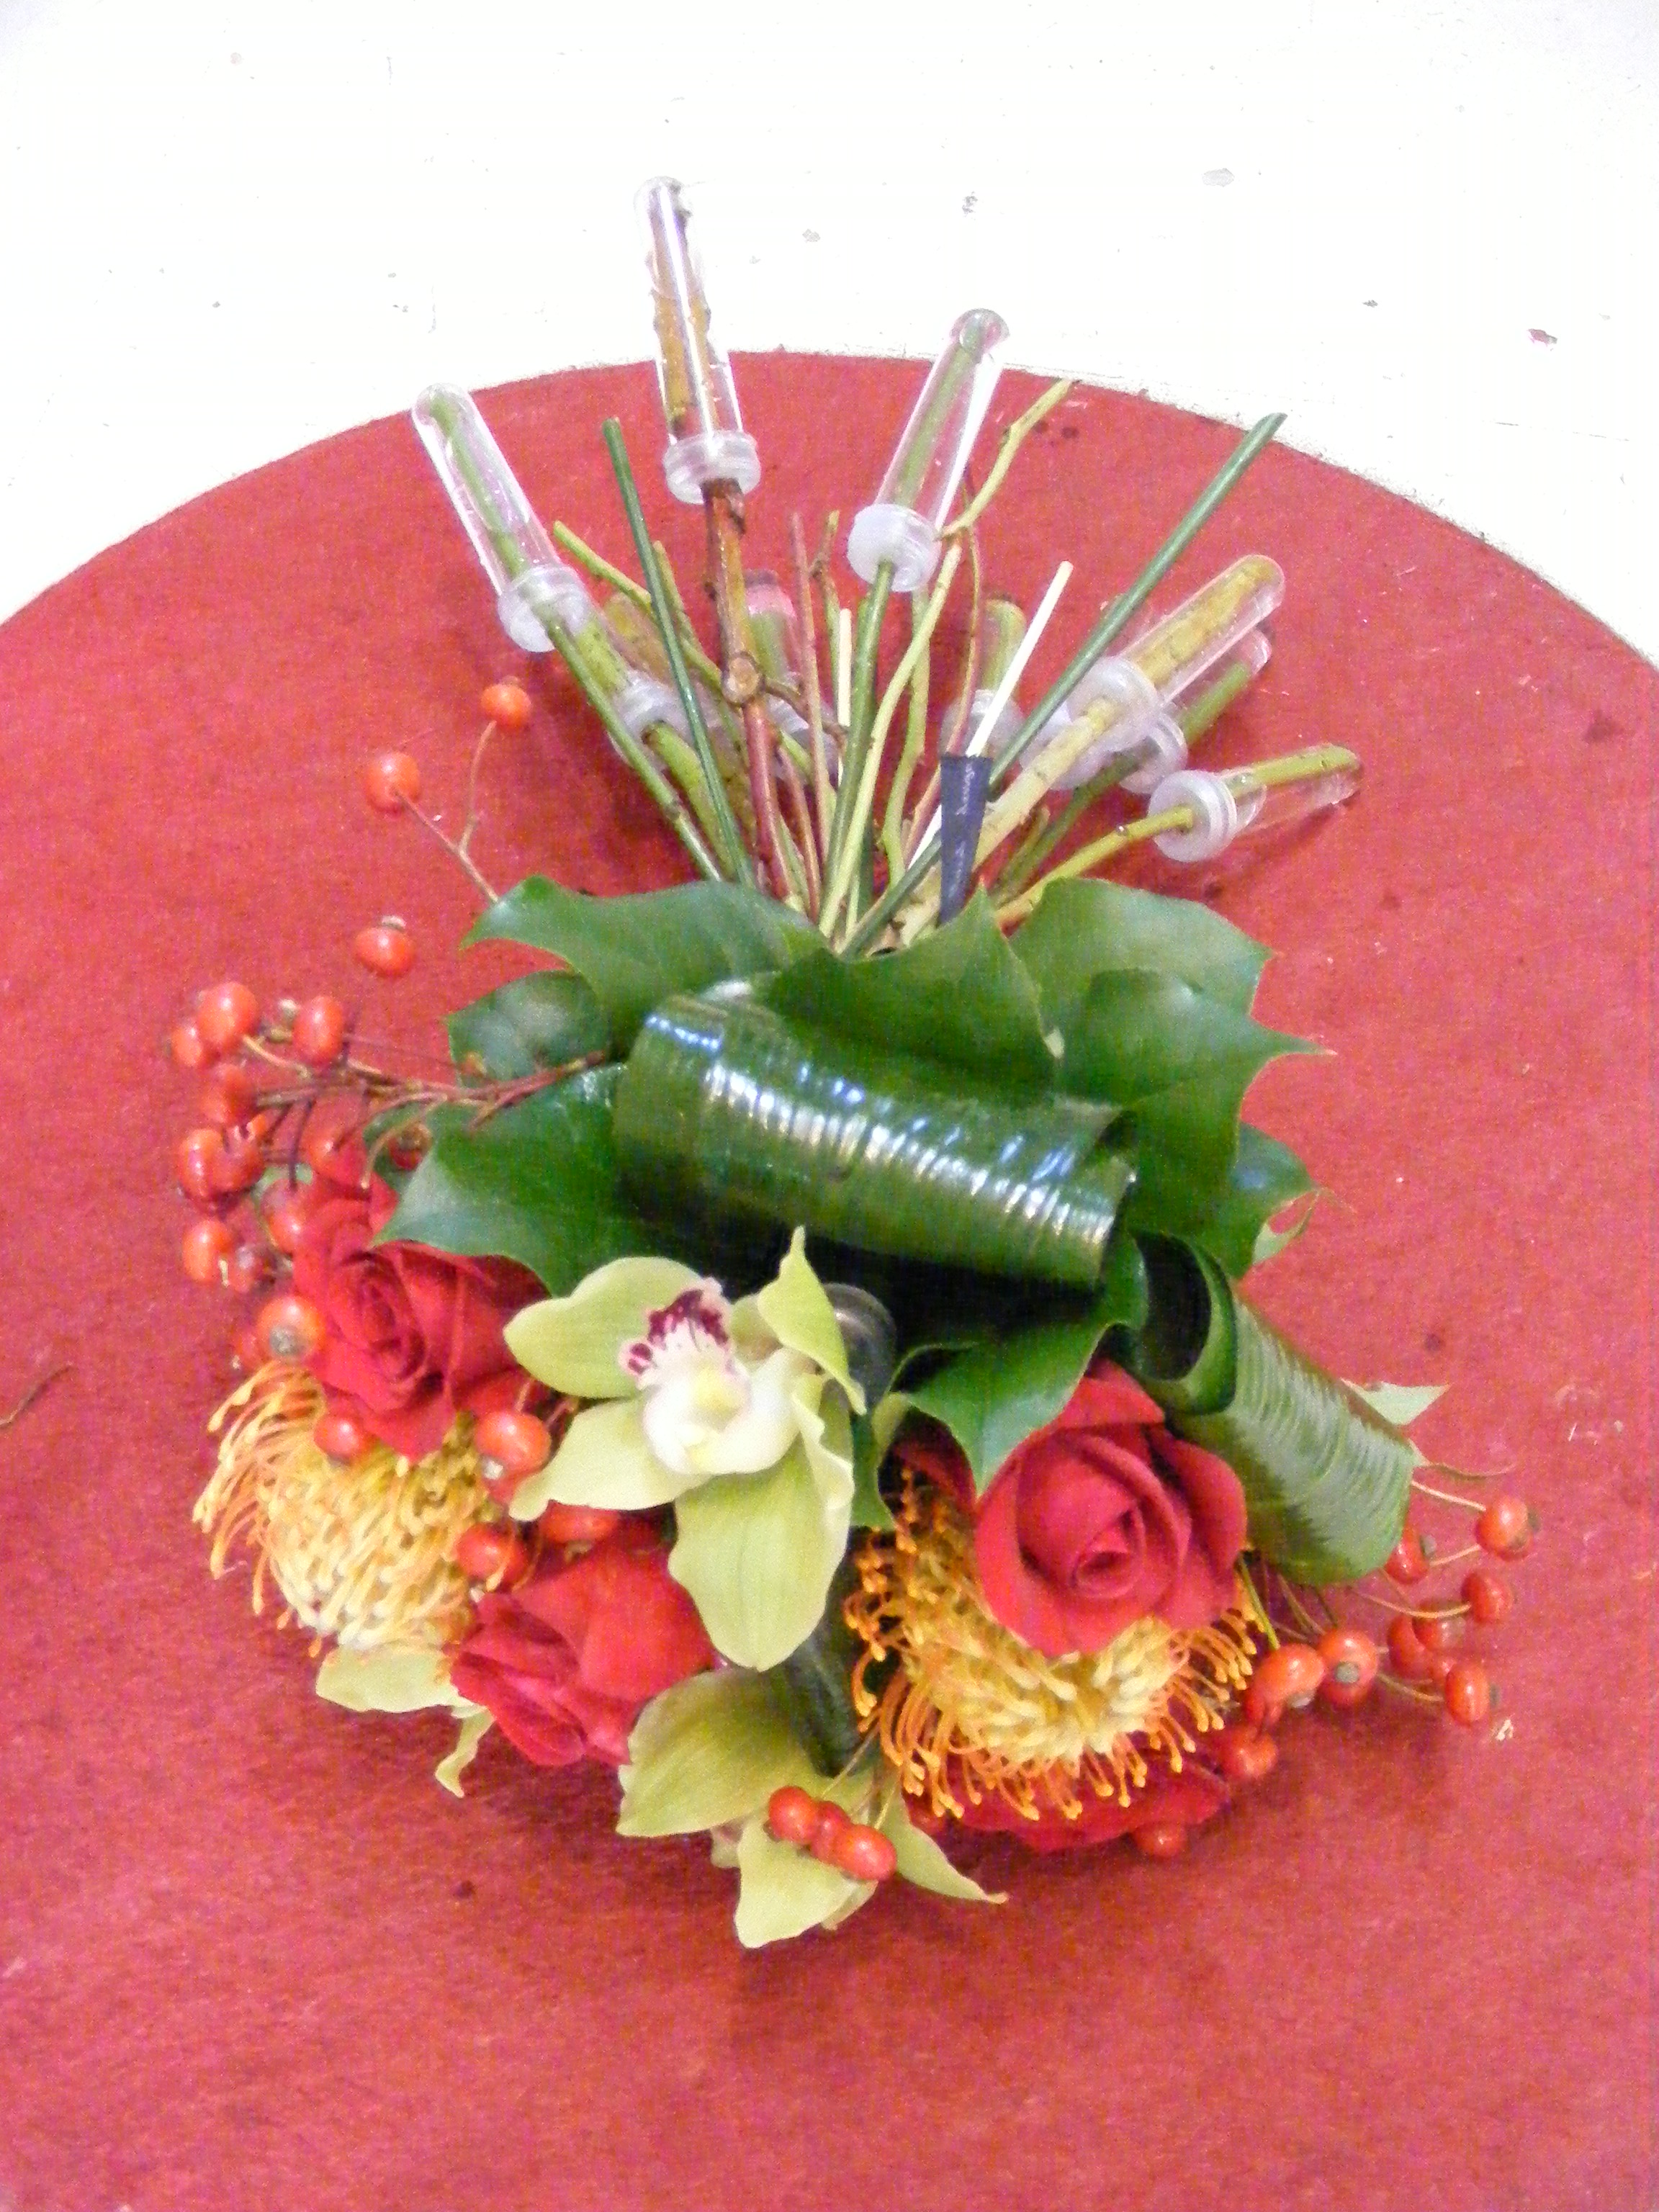 A special flower bouquet mondu floral design high end downtown a special flower bouquet should be composed with love creativity texture and color when we design our bouquets we put passion and the best high end izmirmasajfo Images